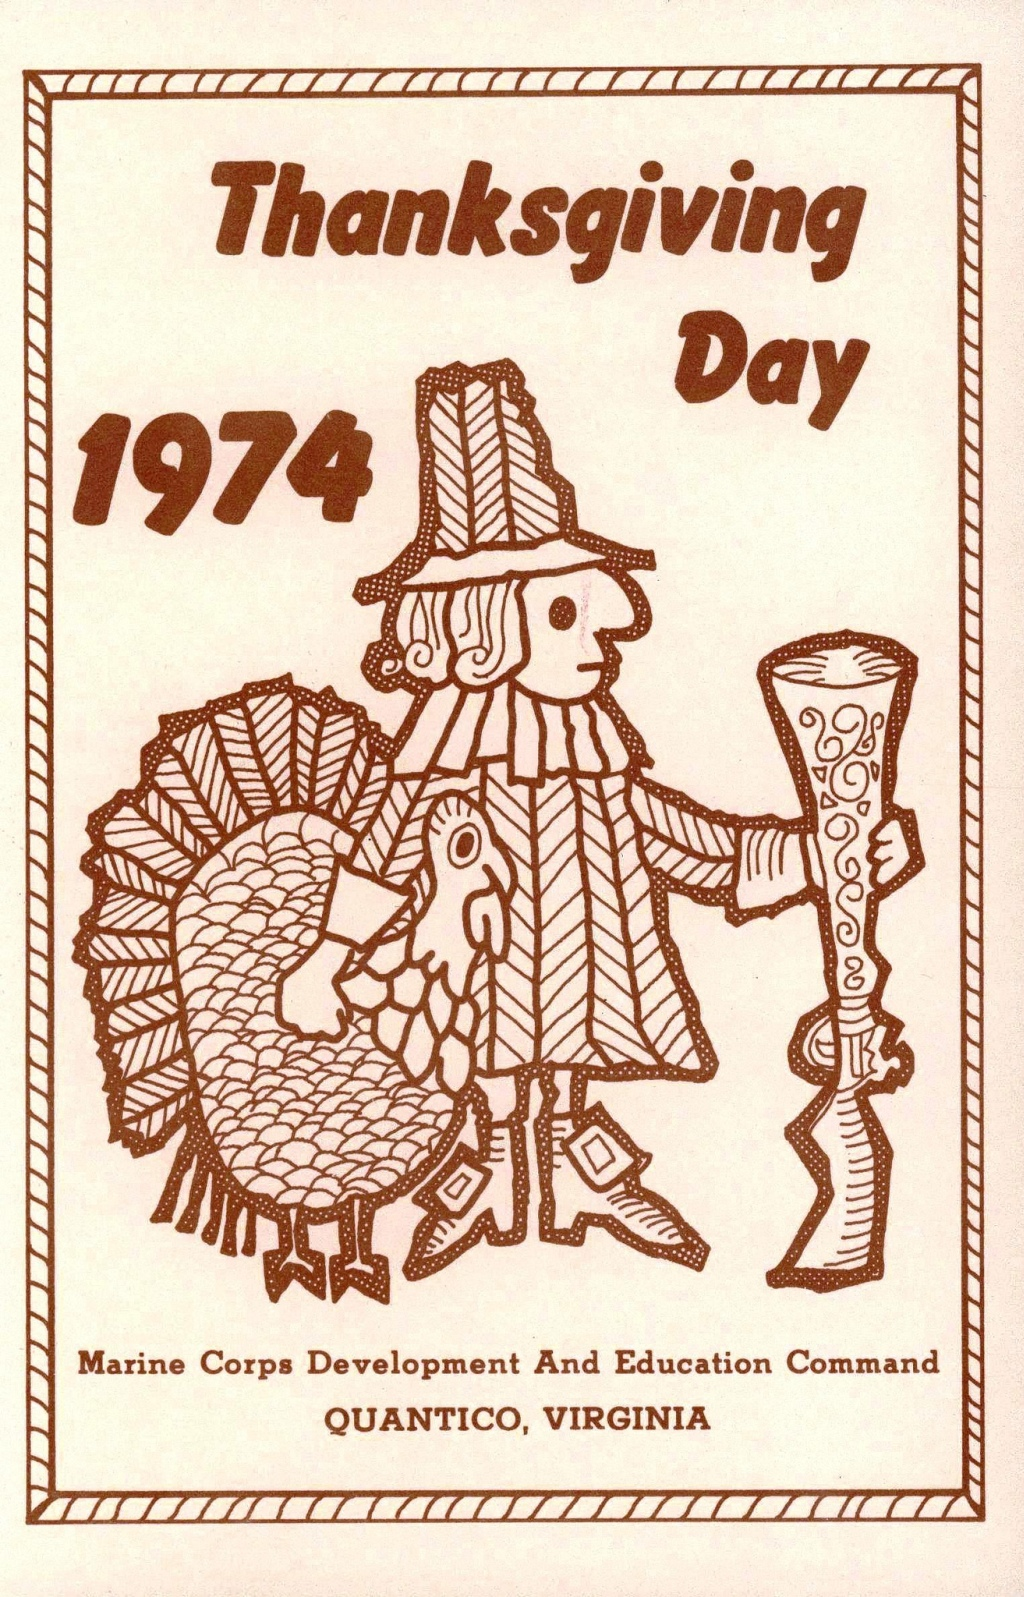 Thanksgiving Day 1974